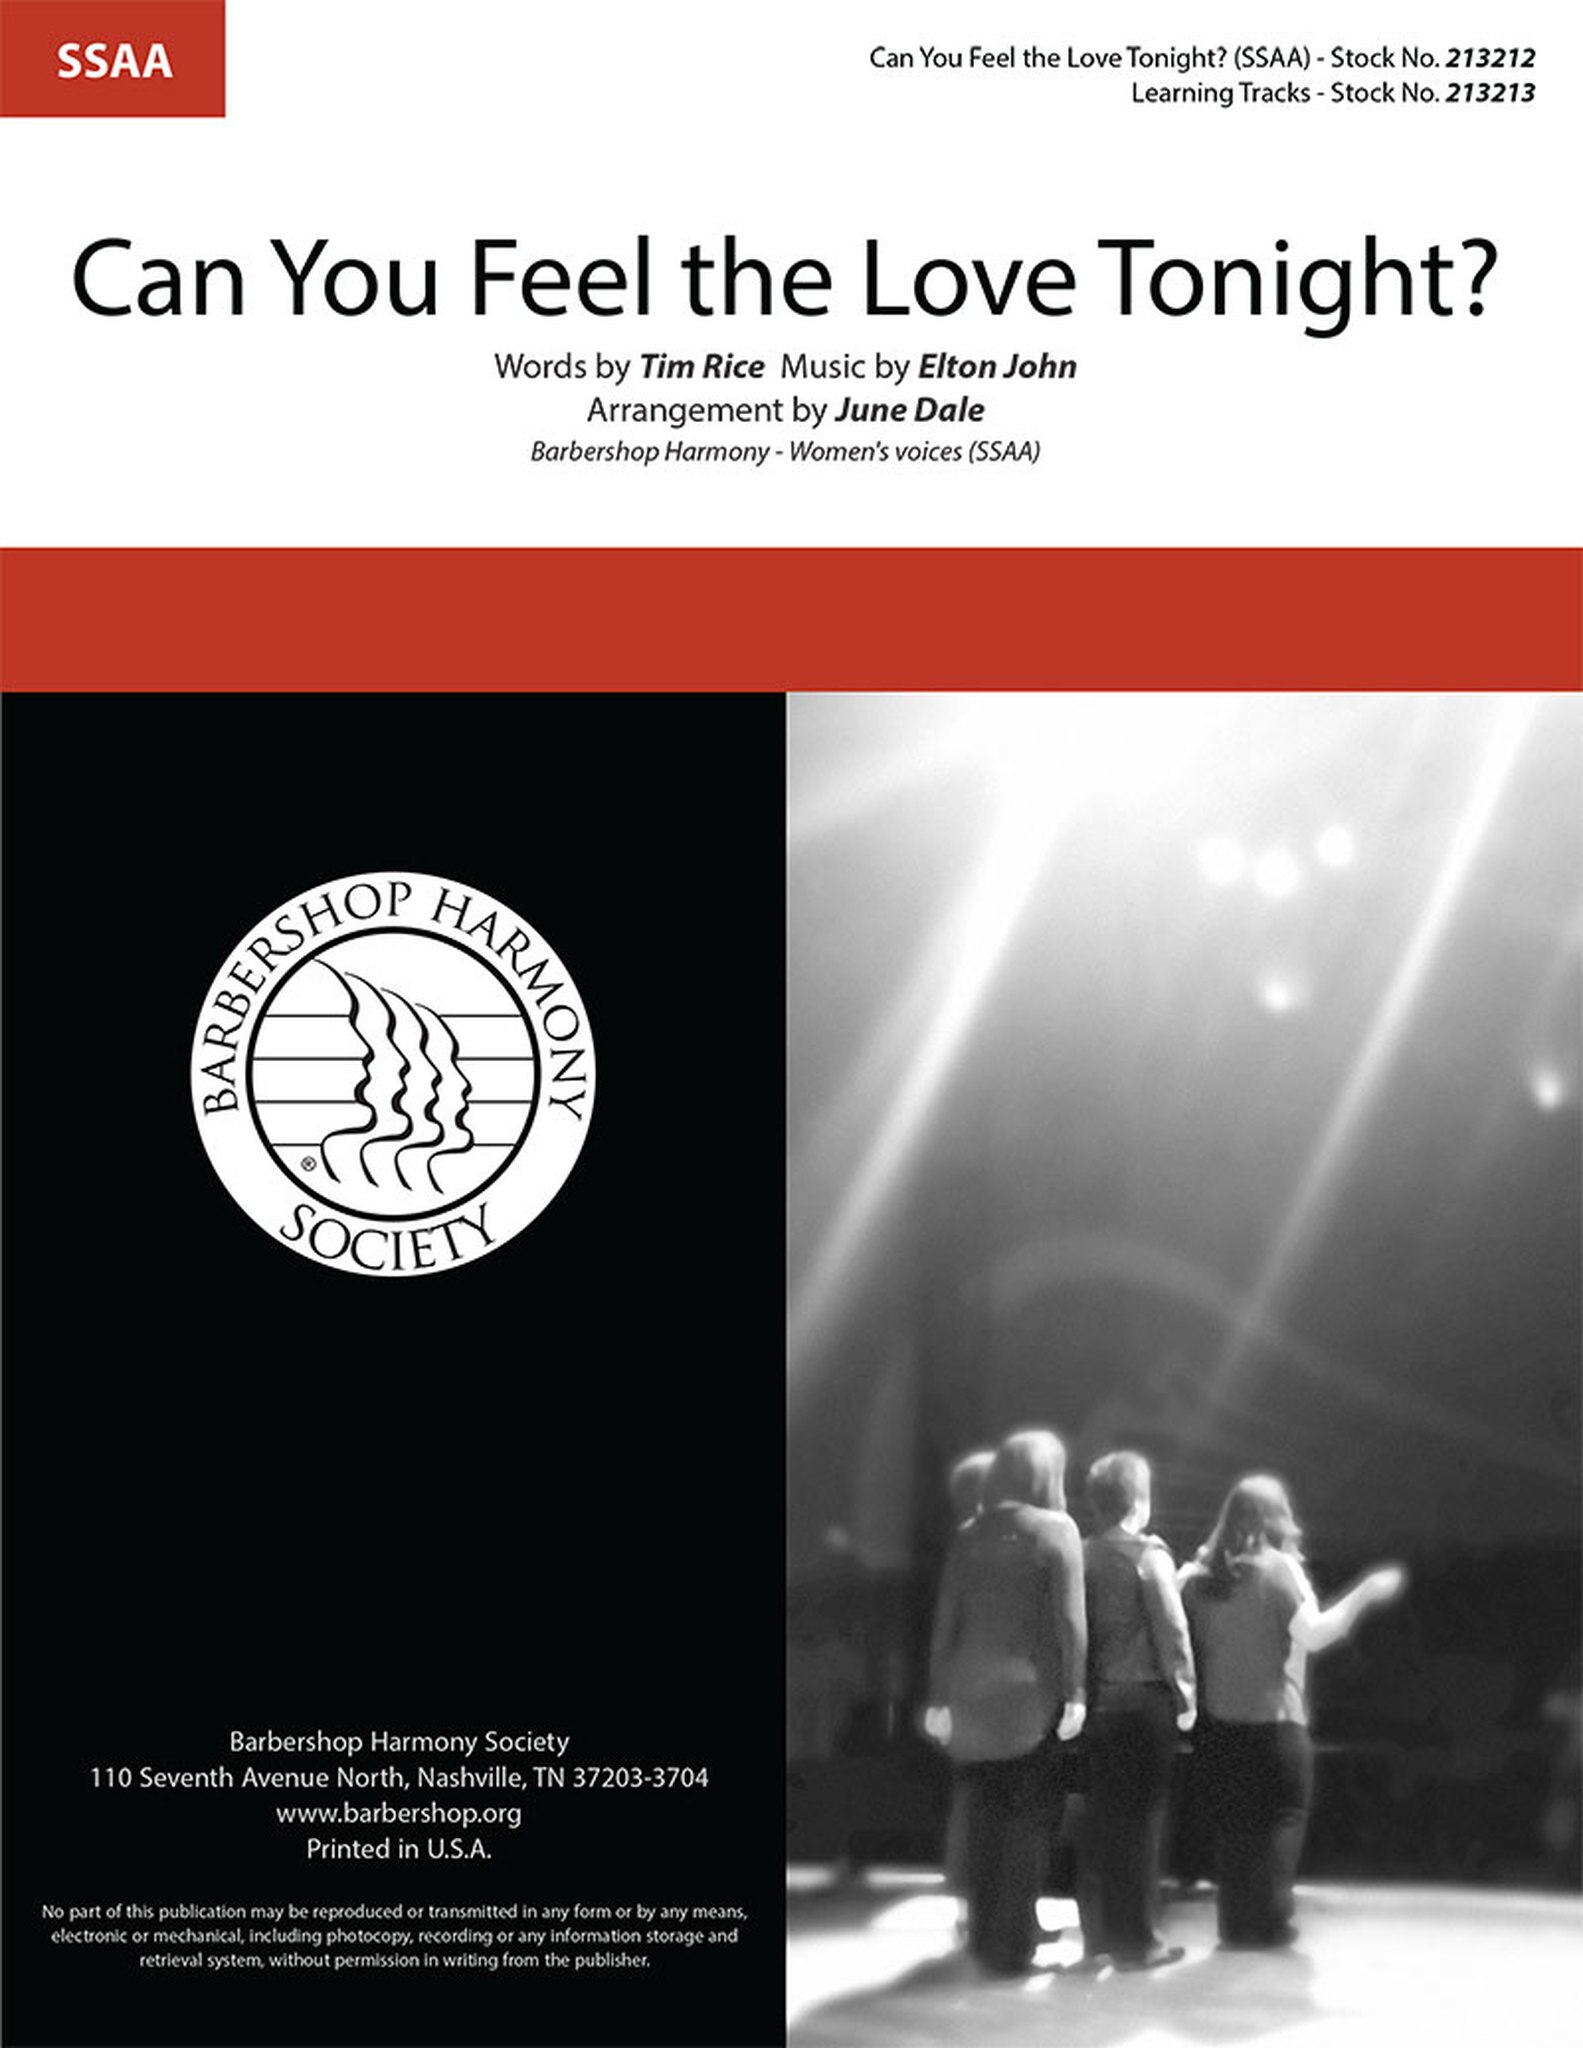 Can You Feel the Love Tonight? : SSAA : June Dale : Elton John : The Lion King : Sheet Music : 213212